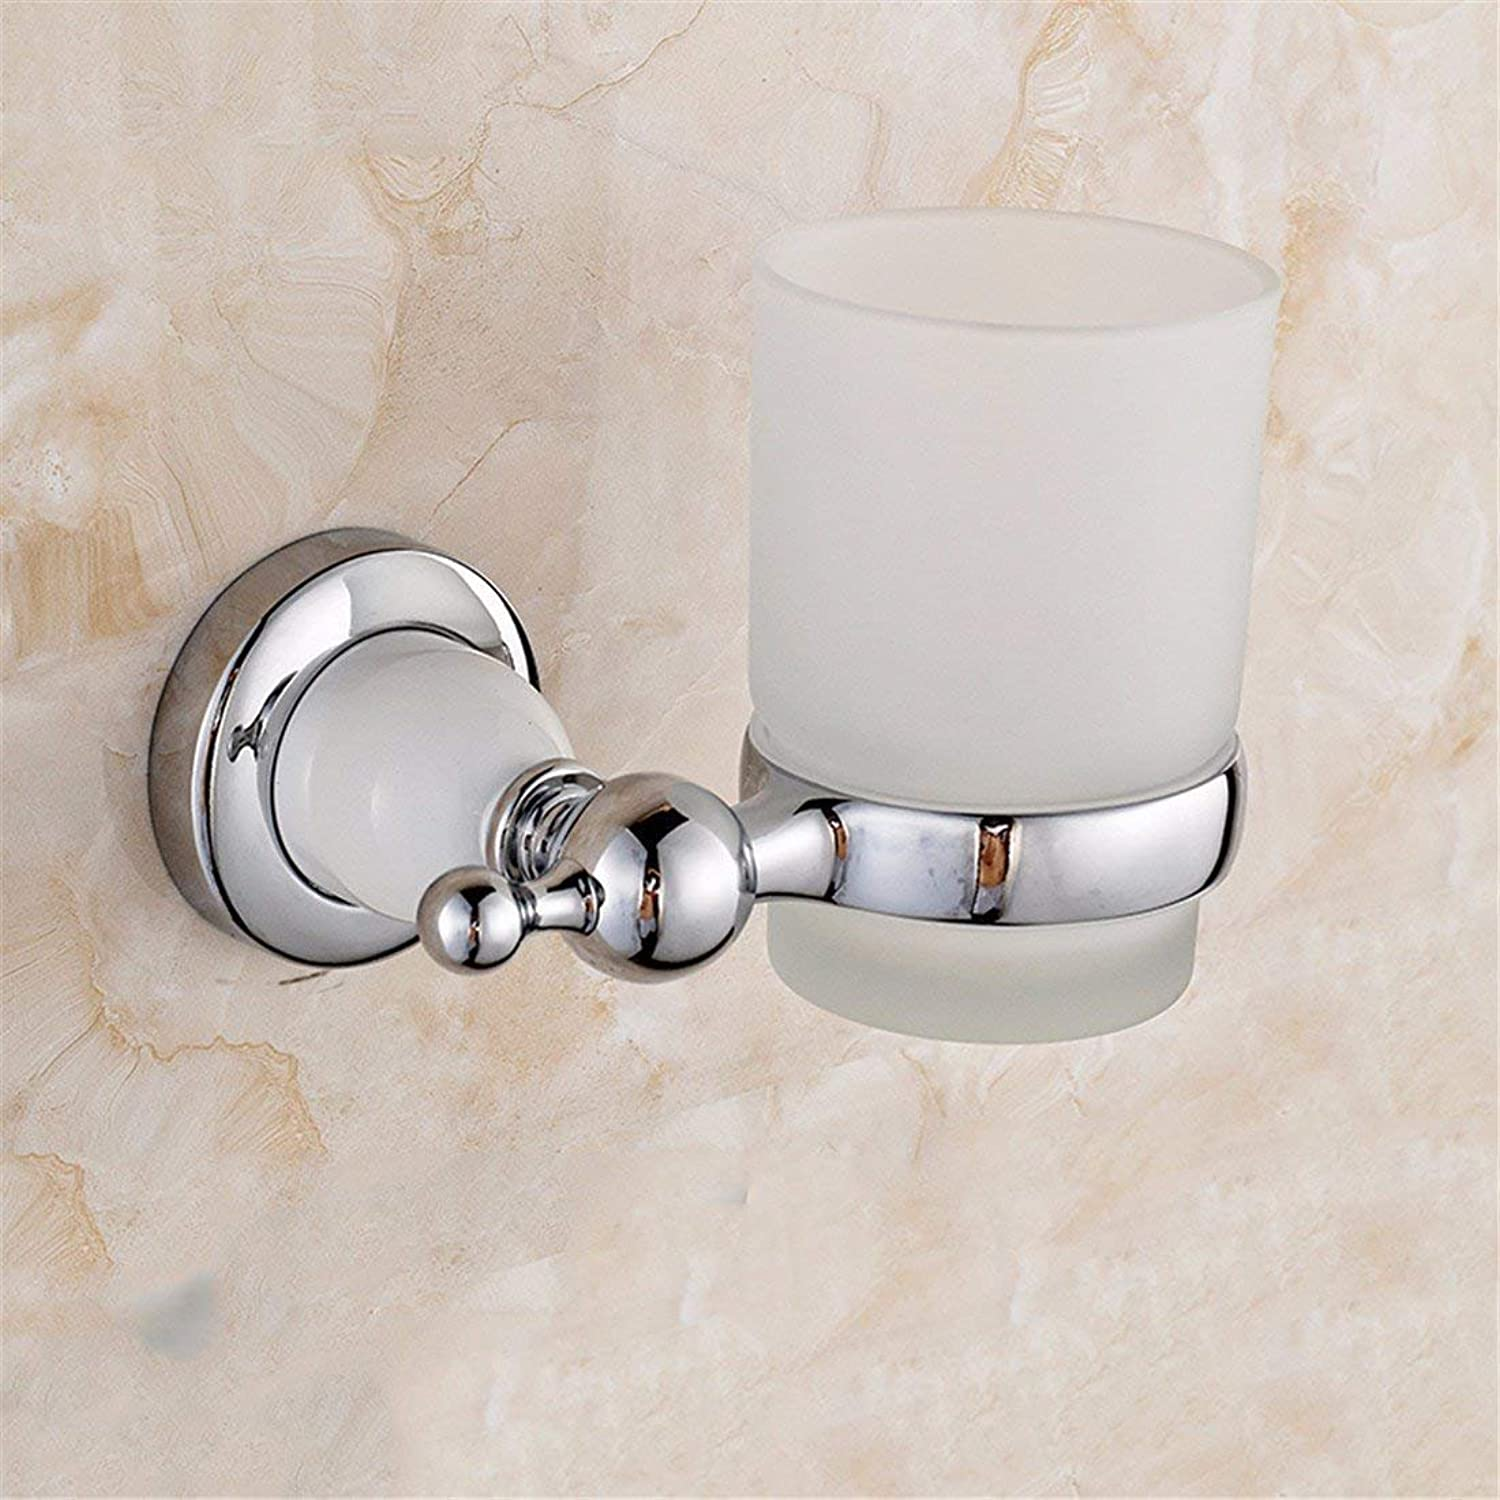 Cook, of The European Money Copper White Lacquered Bathroom Hanger Should be of a Toilet Brush Fort,Single Cup